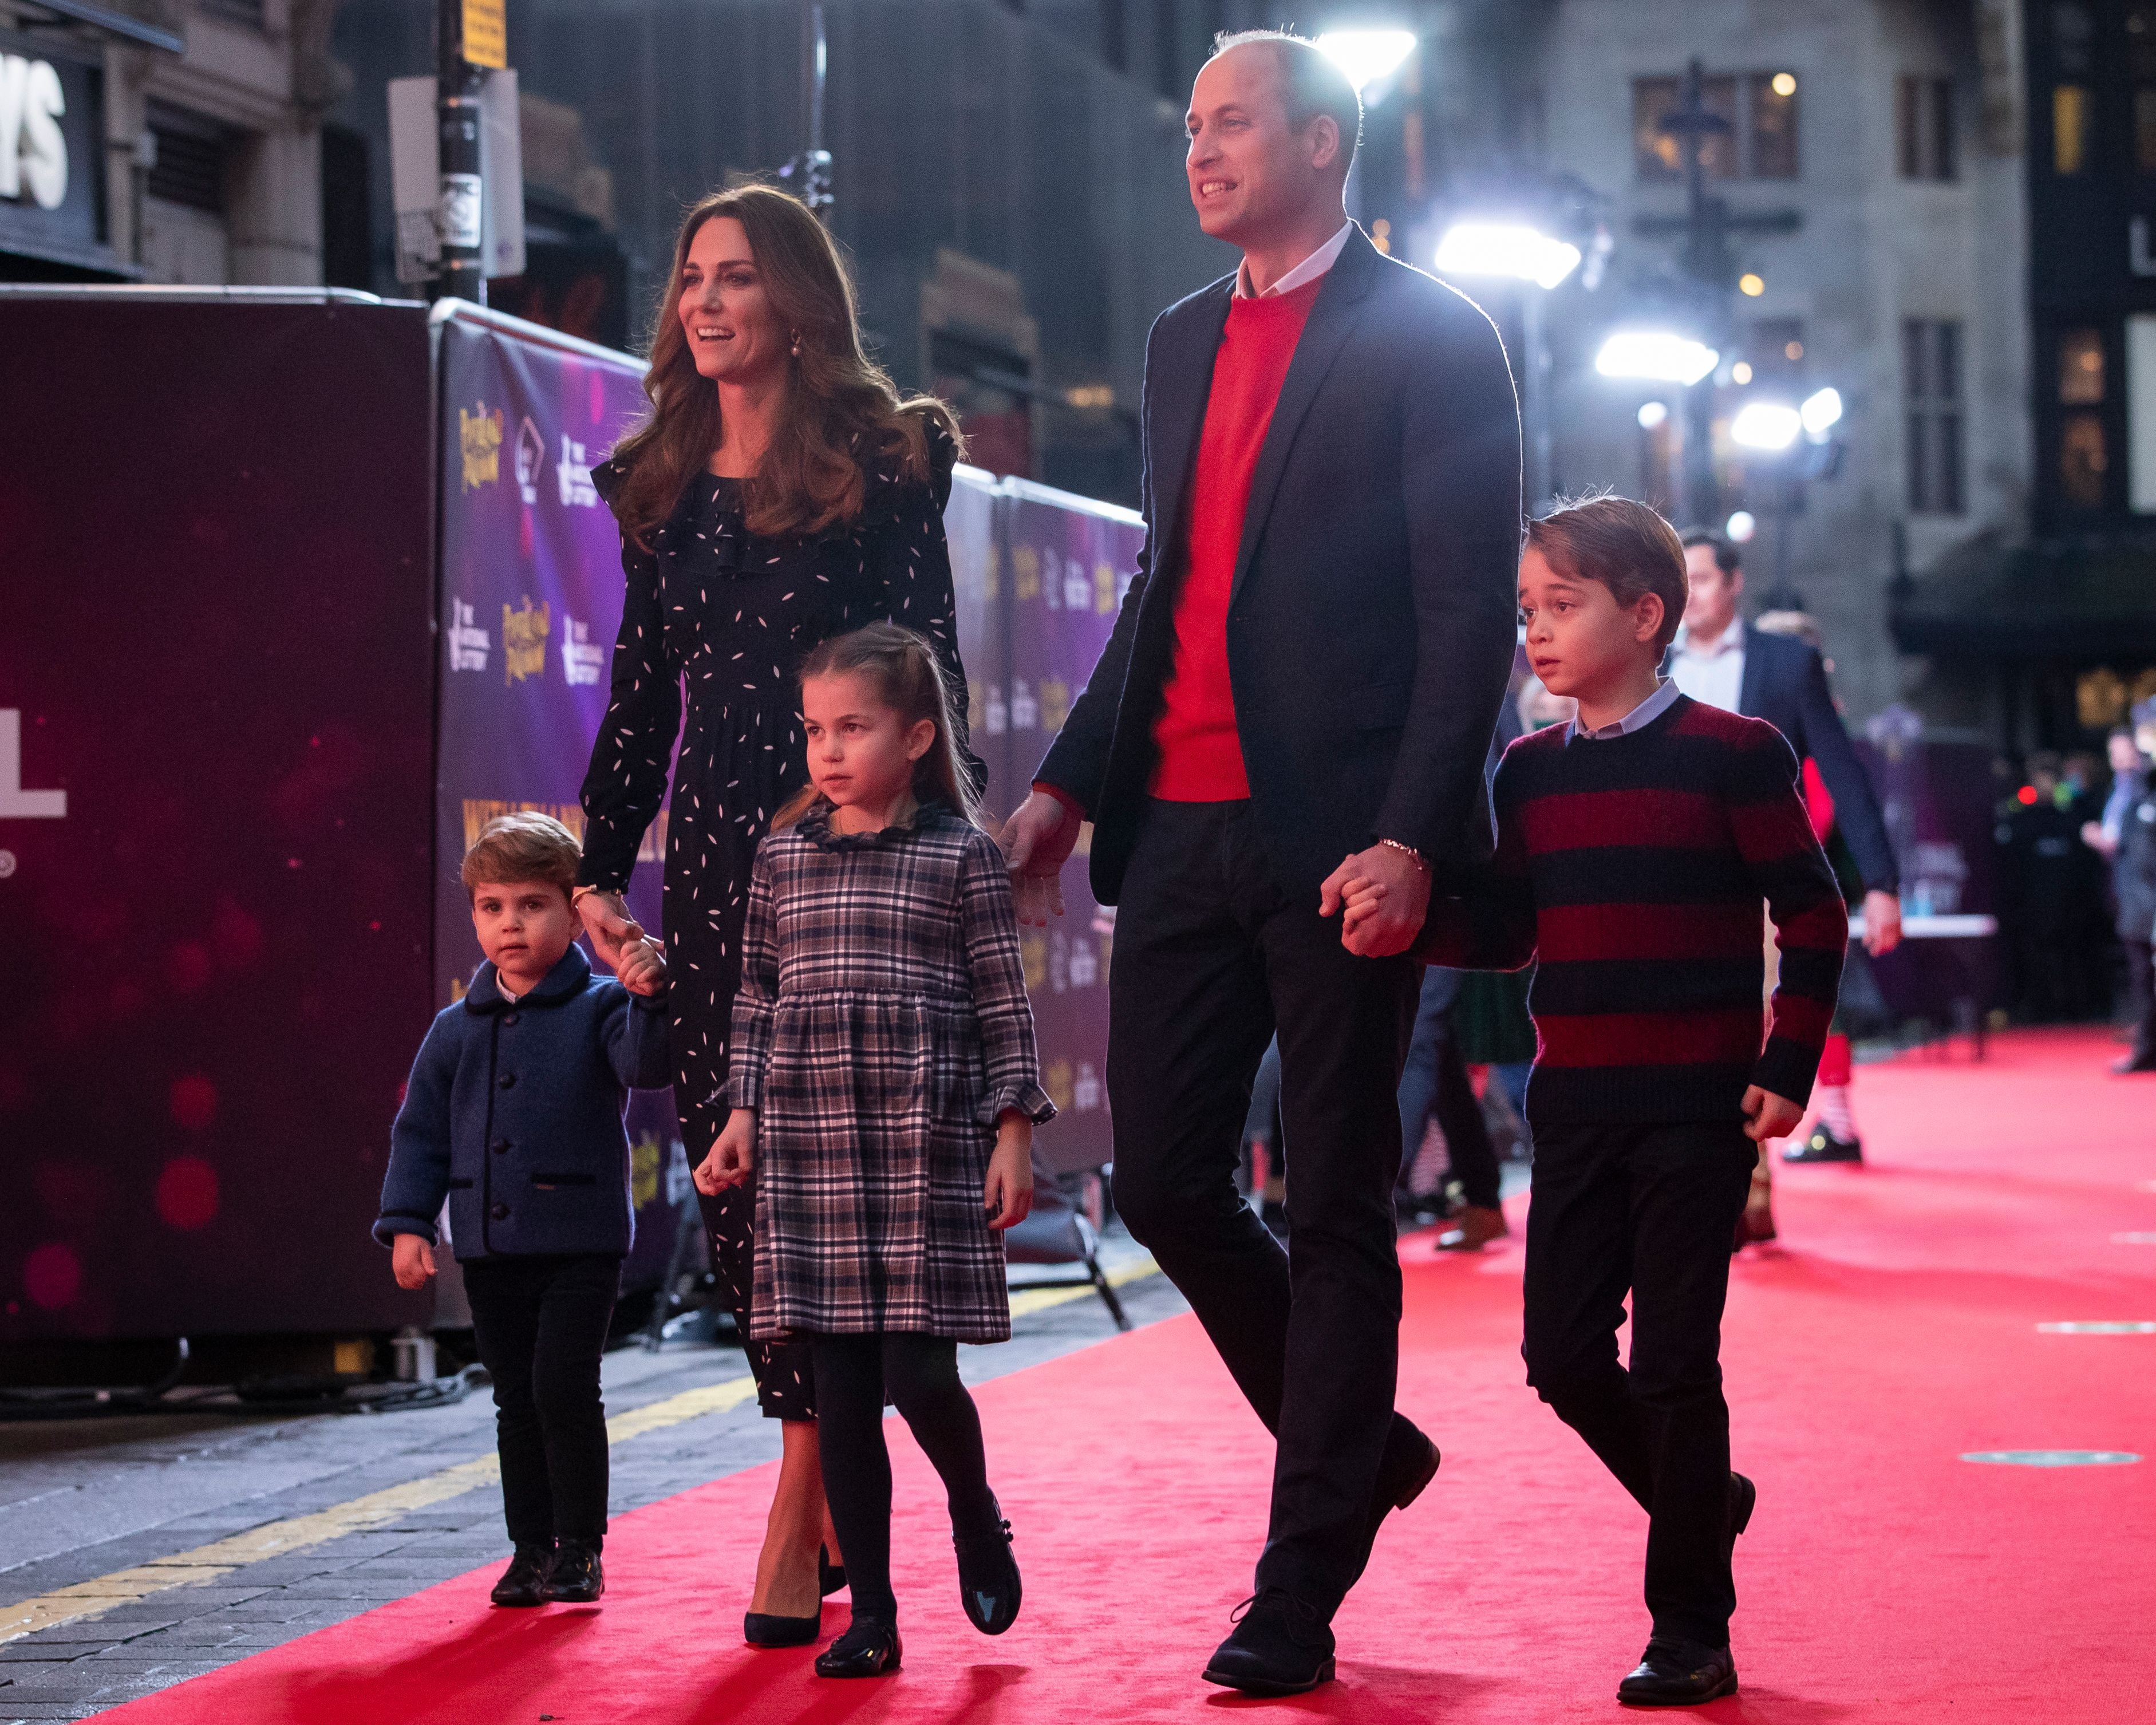 Prince William, Kate Middleton with their children at a special pantomime performance at London's Palladium Theatre, hosted by The National Lottery on December 11, 2020 | Photo: Getty Images